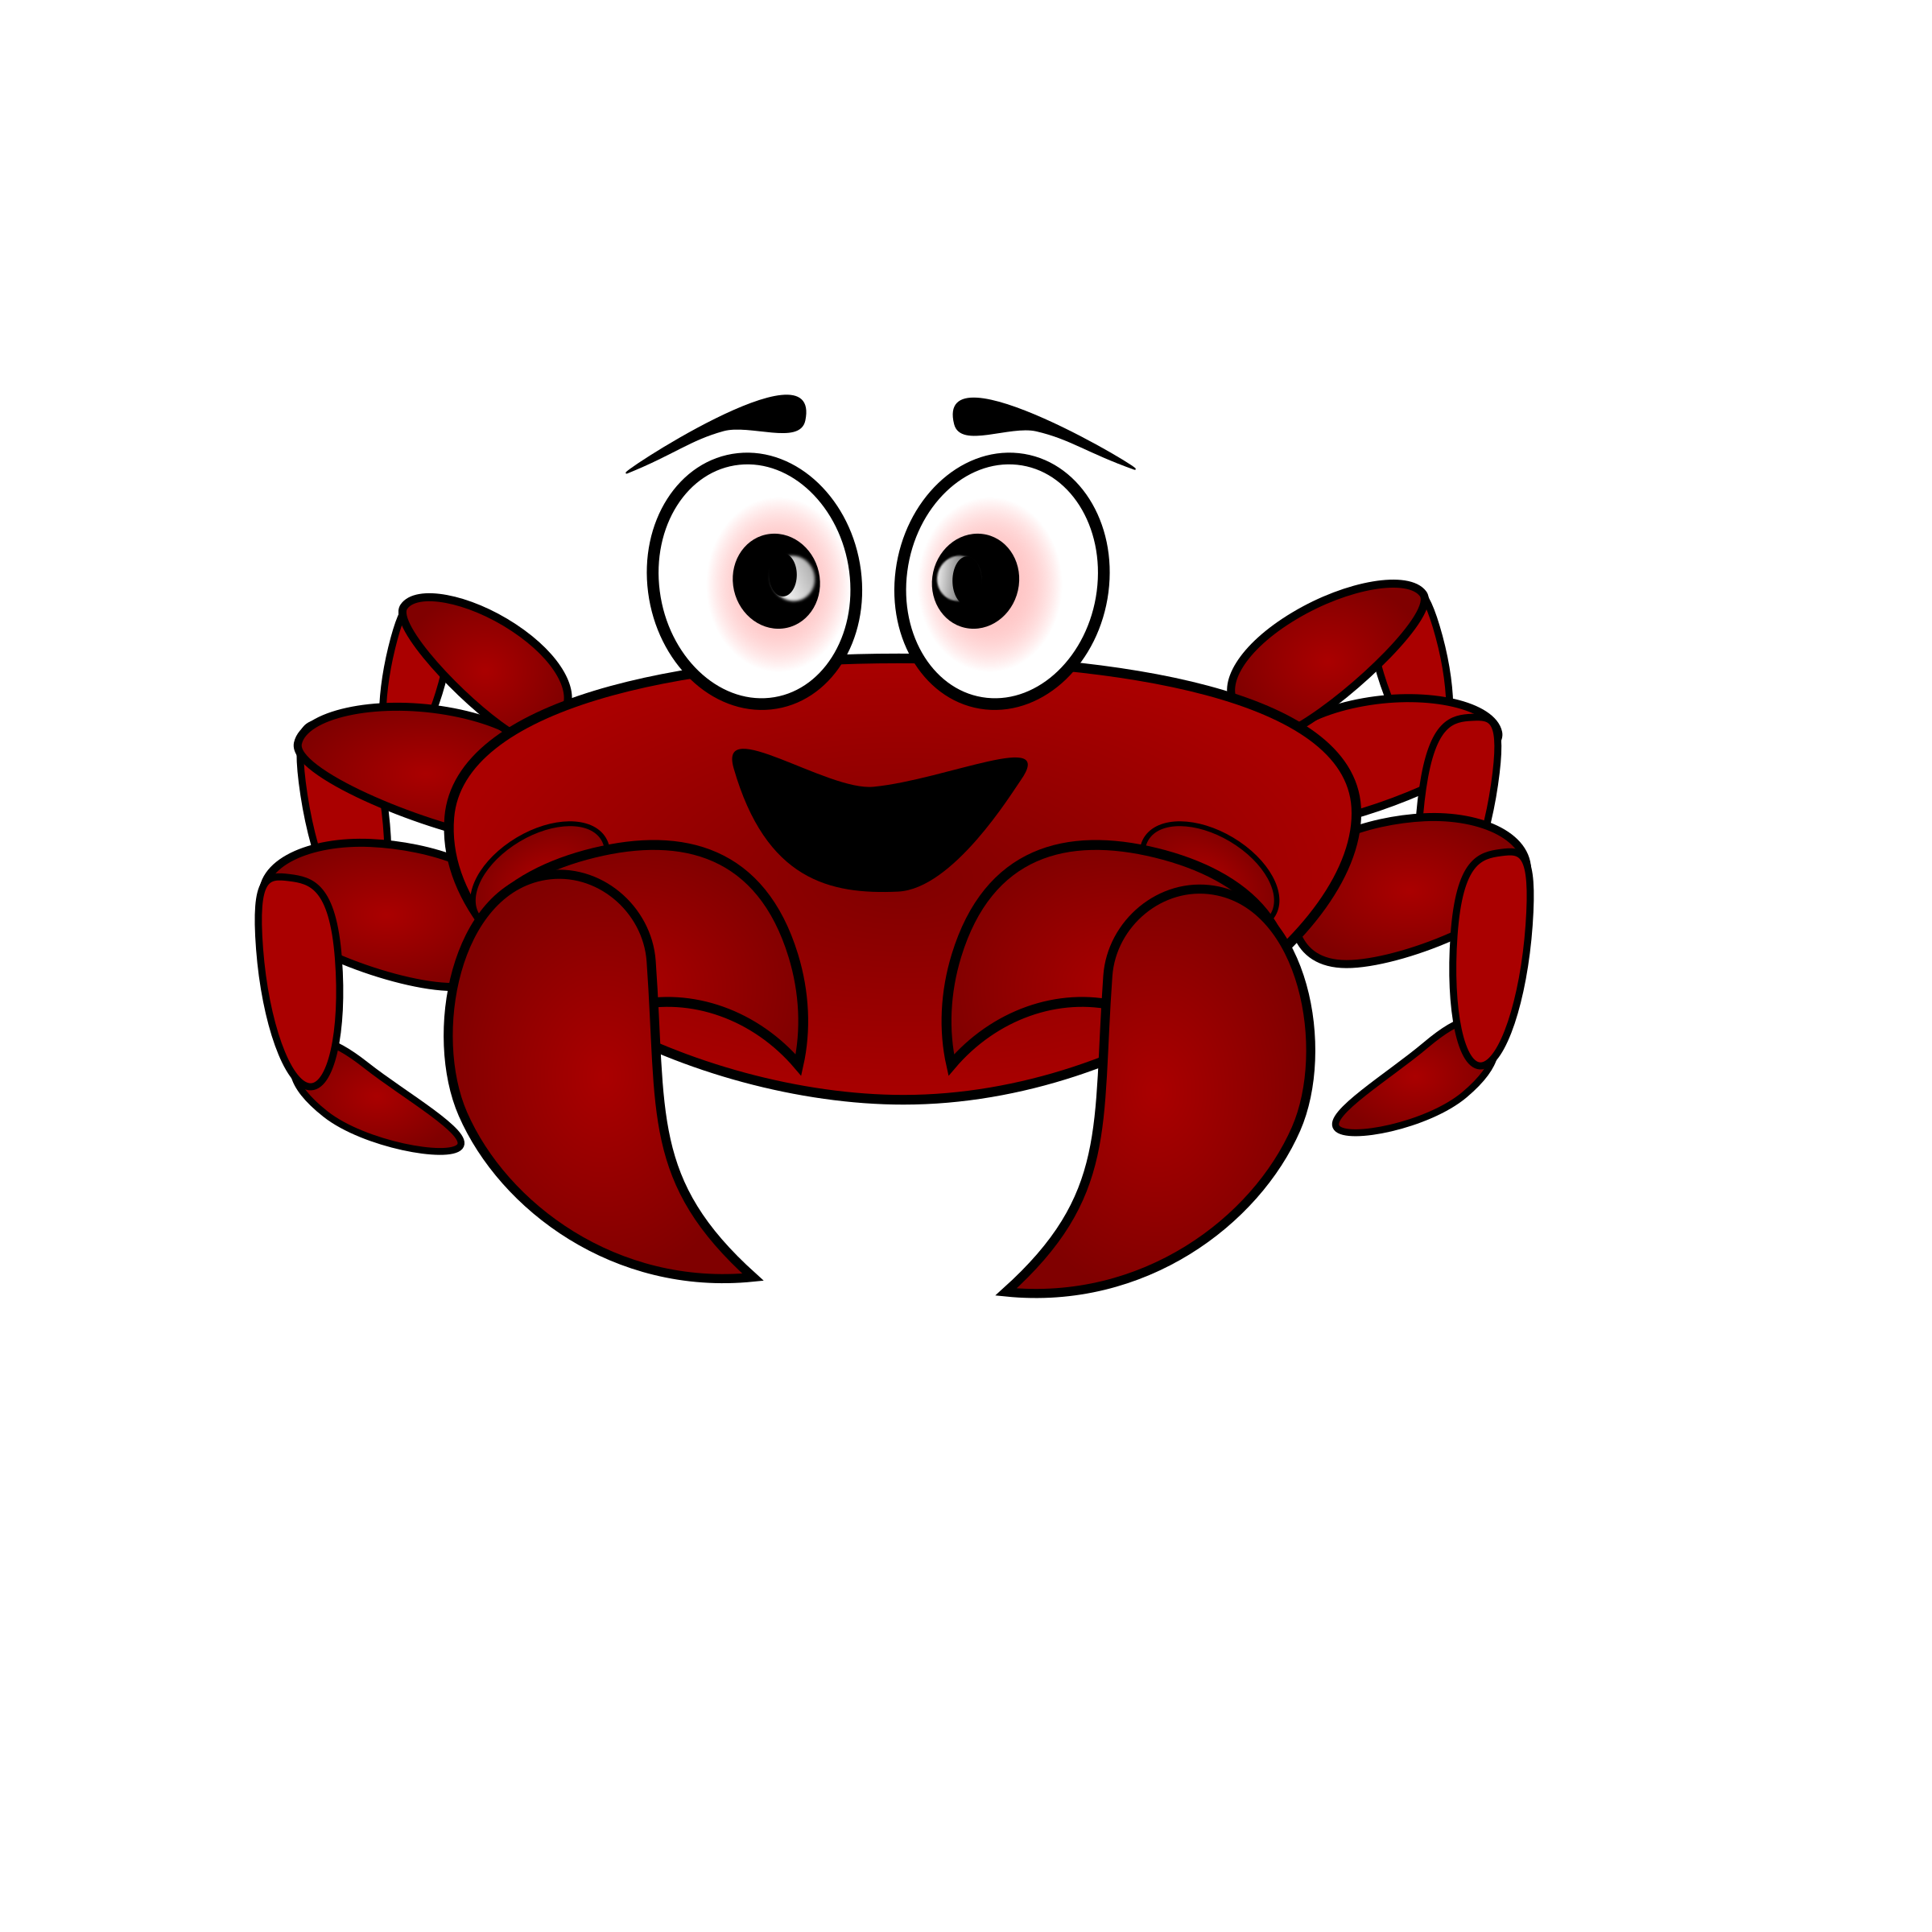 Pixelated crab png. Cartoon icons free and